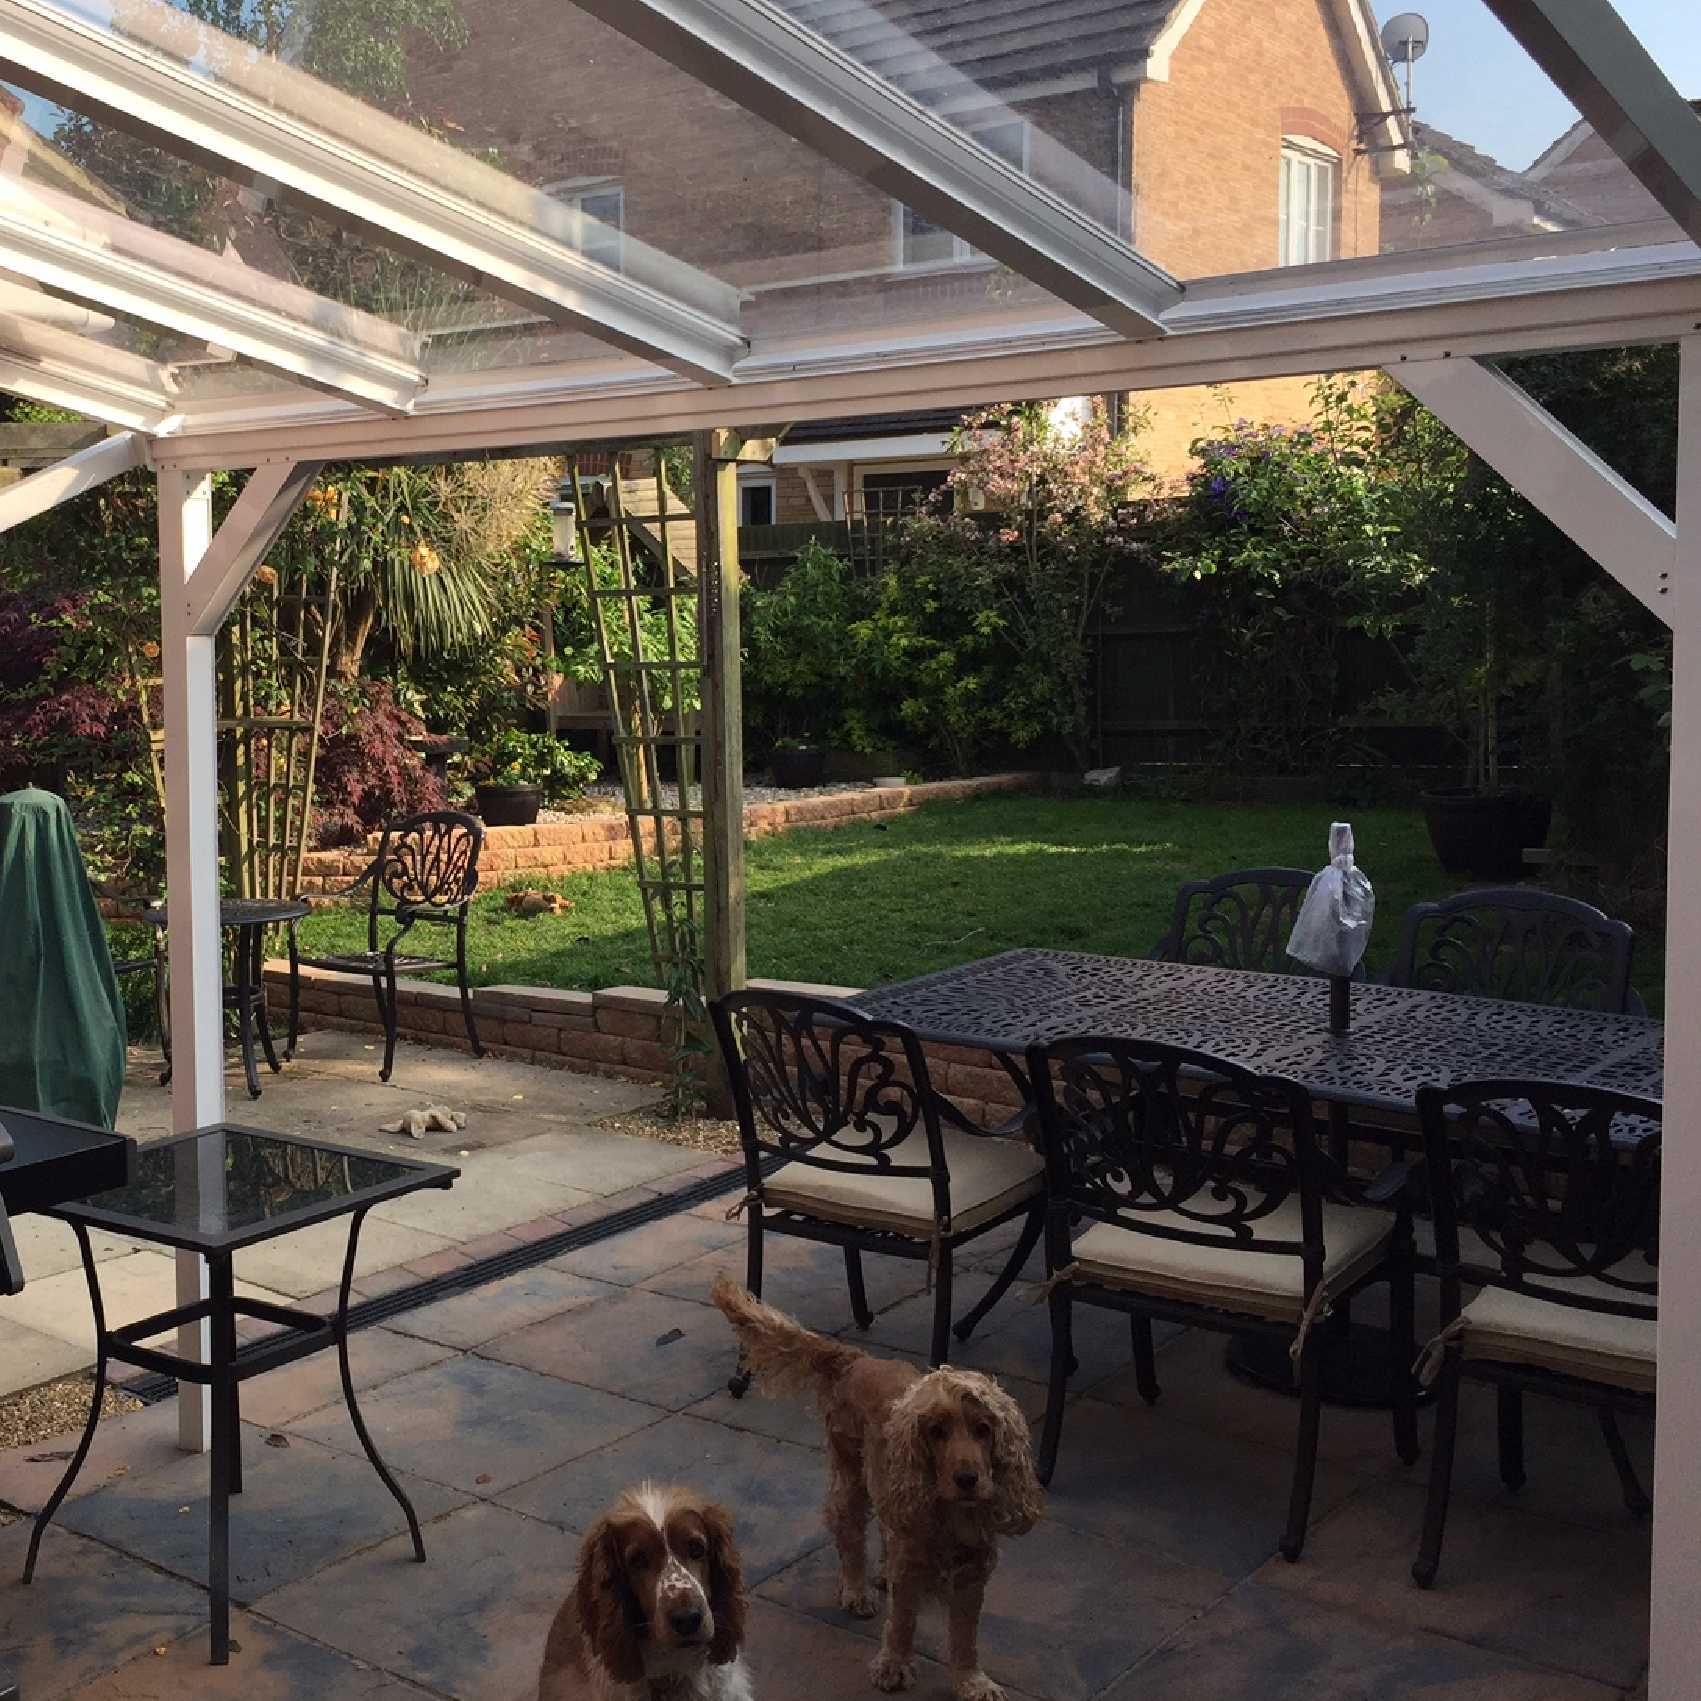 Affordable Omega Smart White Lean-To Canopy with 6mm Glass Clear Plate Polycarbonate Glazing - 2.1m (W) x 3.5m (P), (2) Supporting Posts